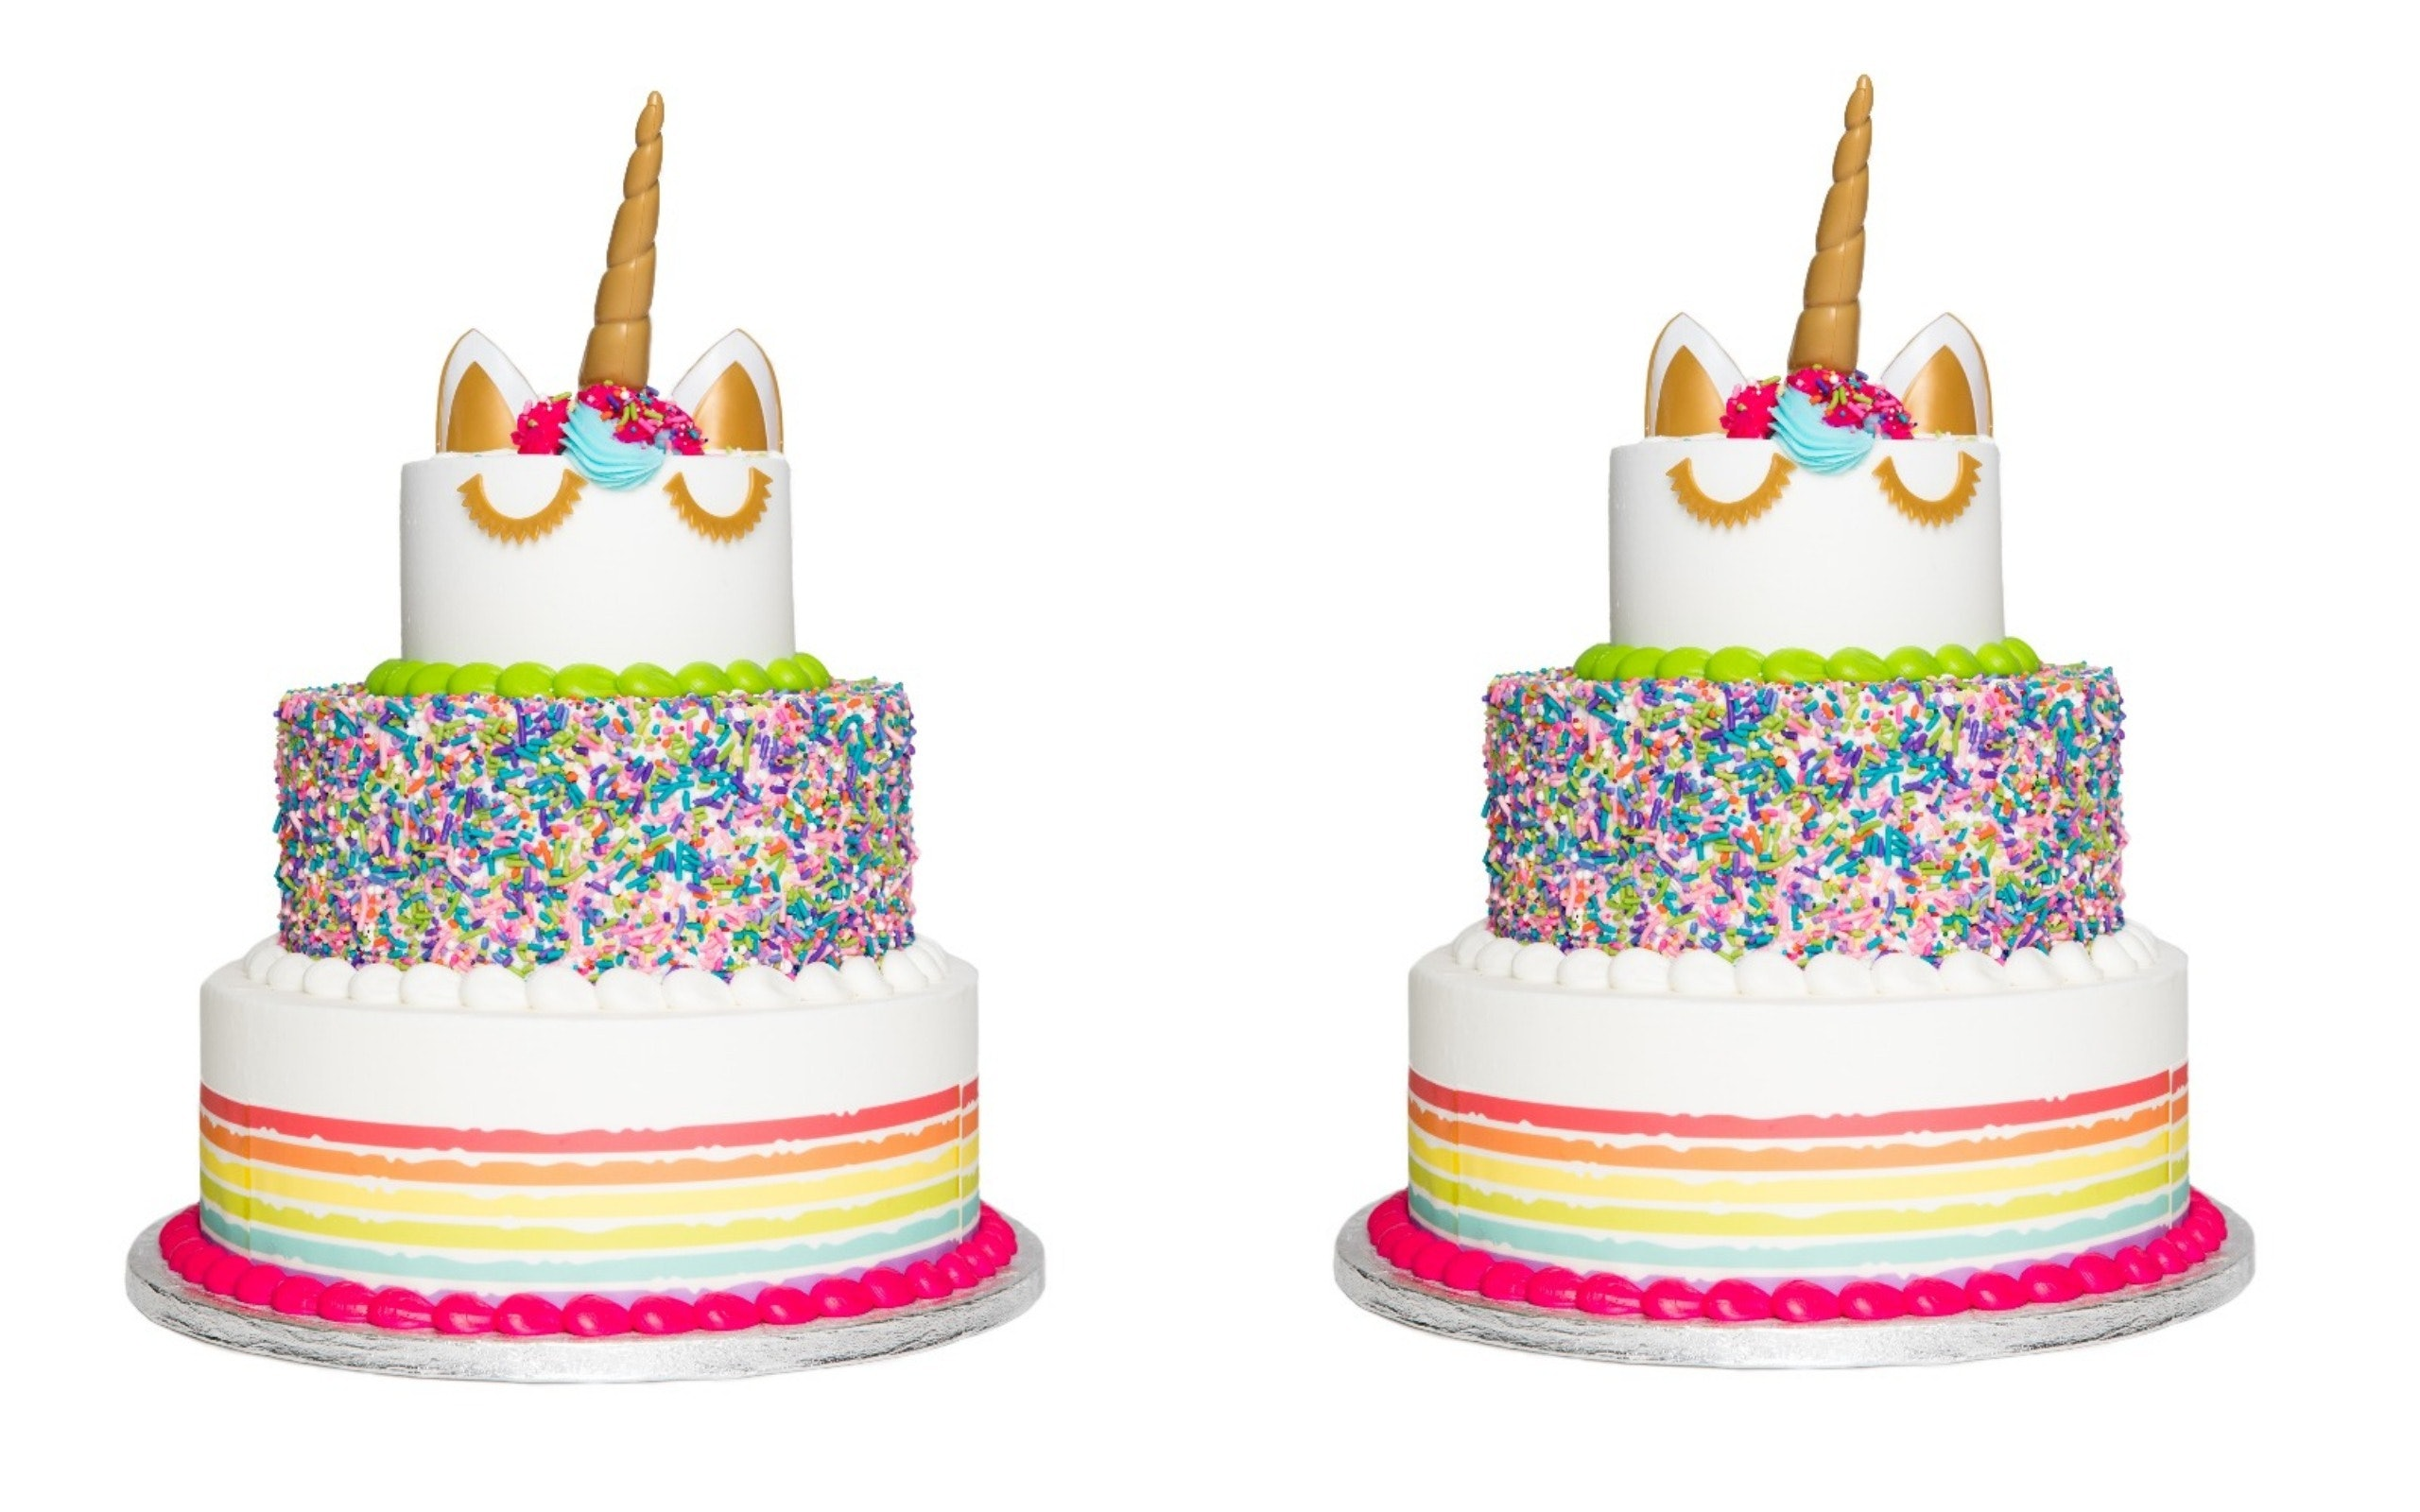 Phenomenal This 3 Tier Unicorn Cake At Sams Club Costs Less Than 70 Feeds Personalised Birthday Cards Paralily Jamesorg